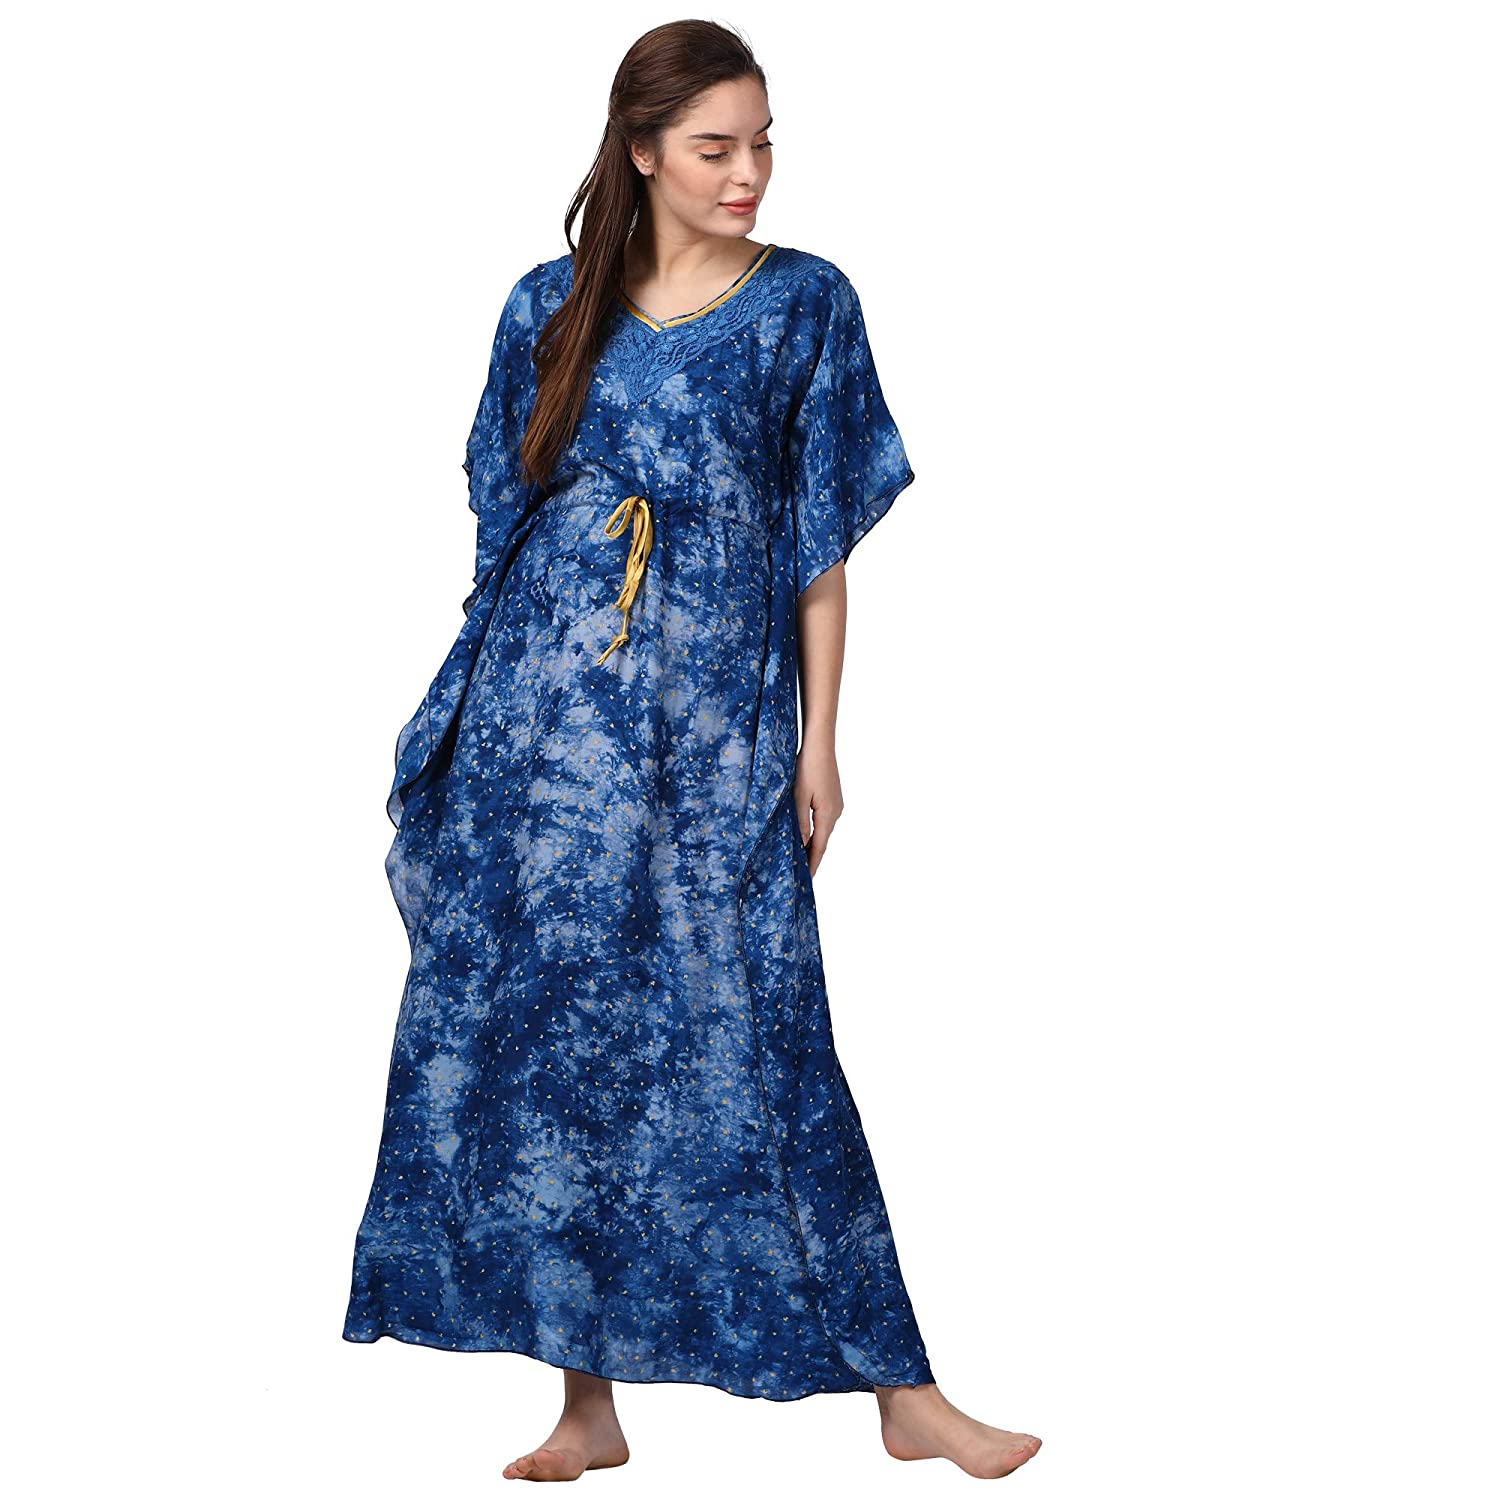 fbcf1500de GOLDSTROMS Minelli Women Printed Kaftan Blue Dress  Amazon.in  Clothing    Accessories